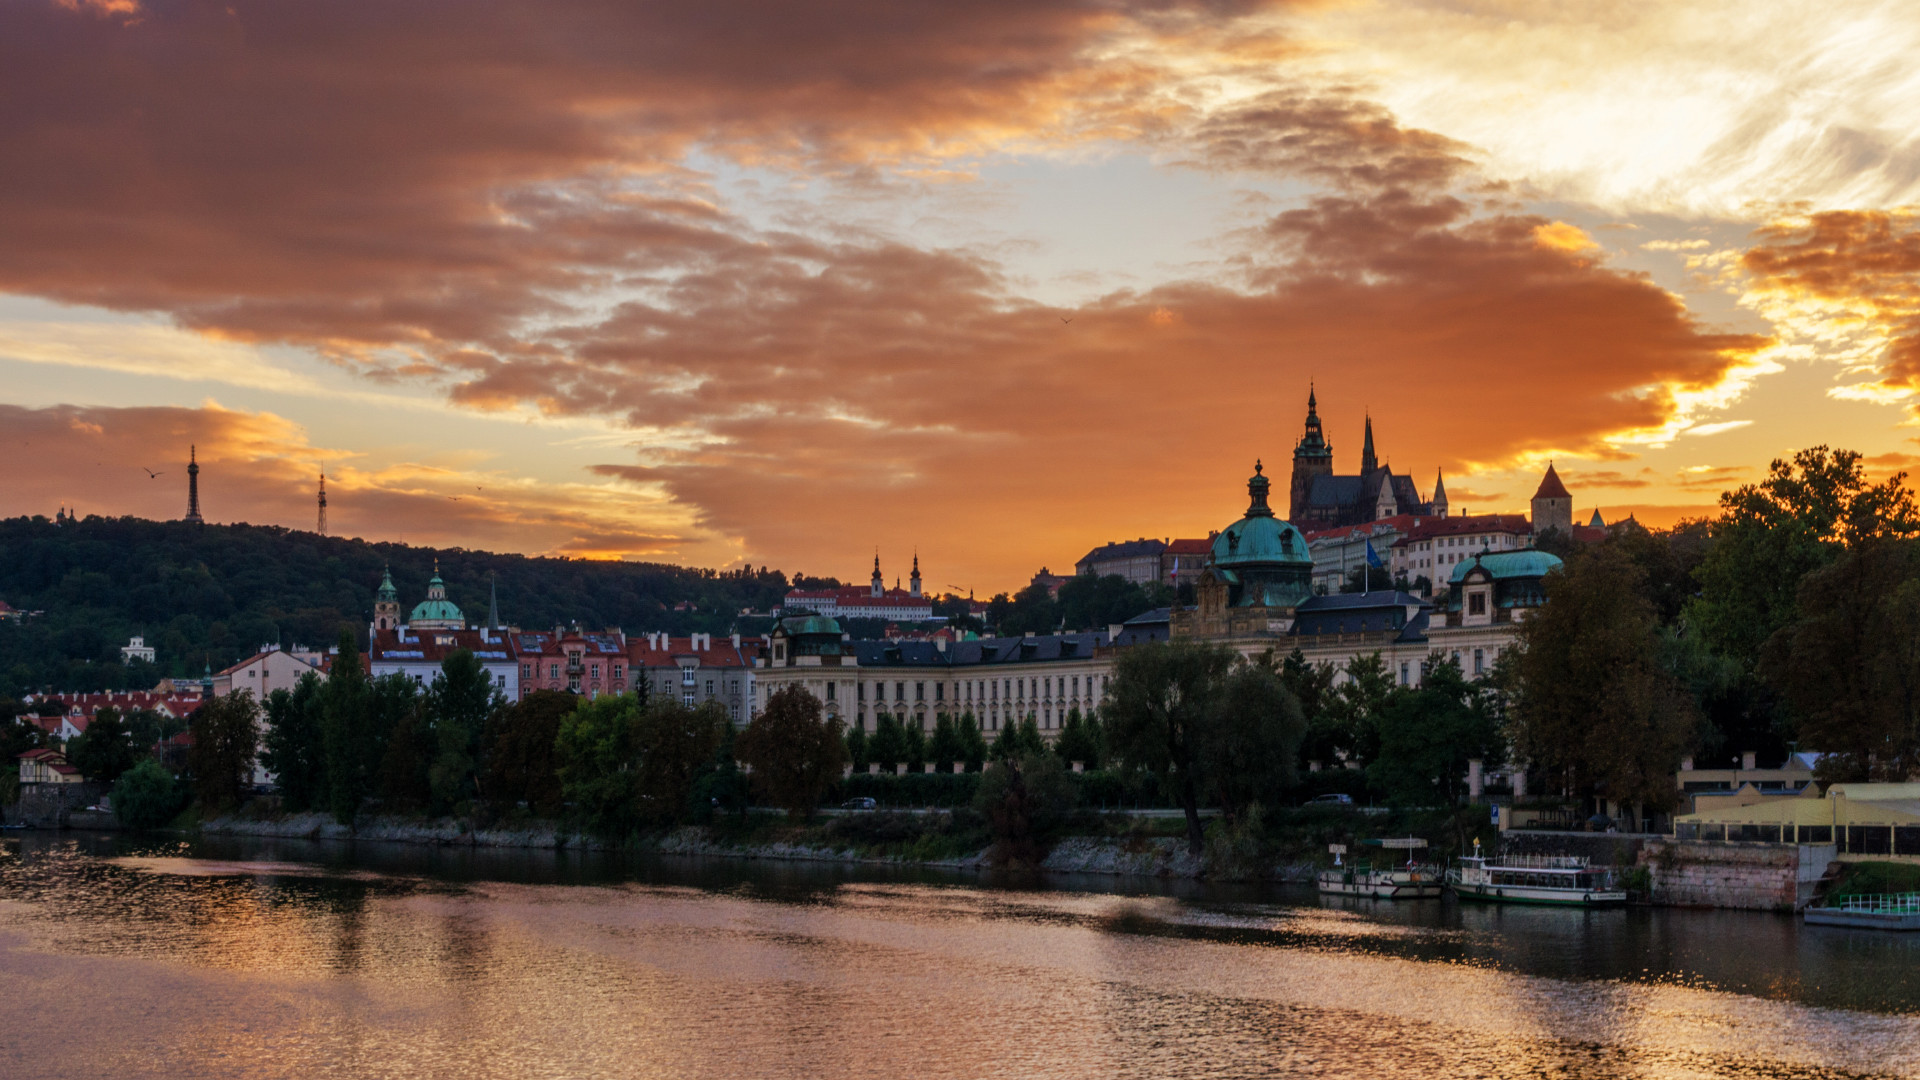 Sunset on the Vltava